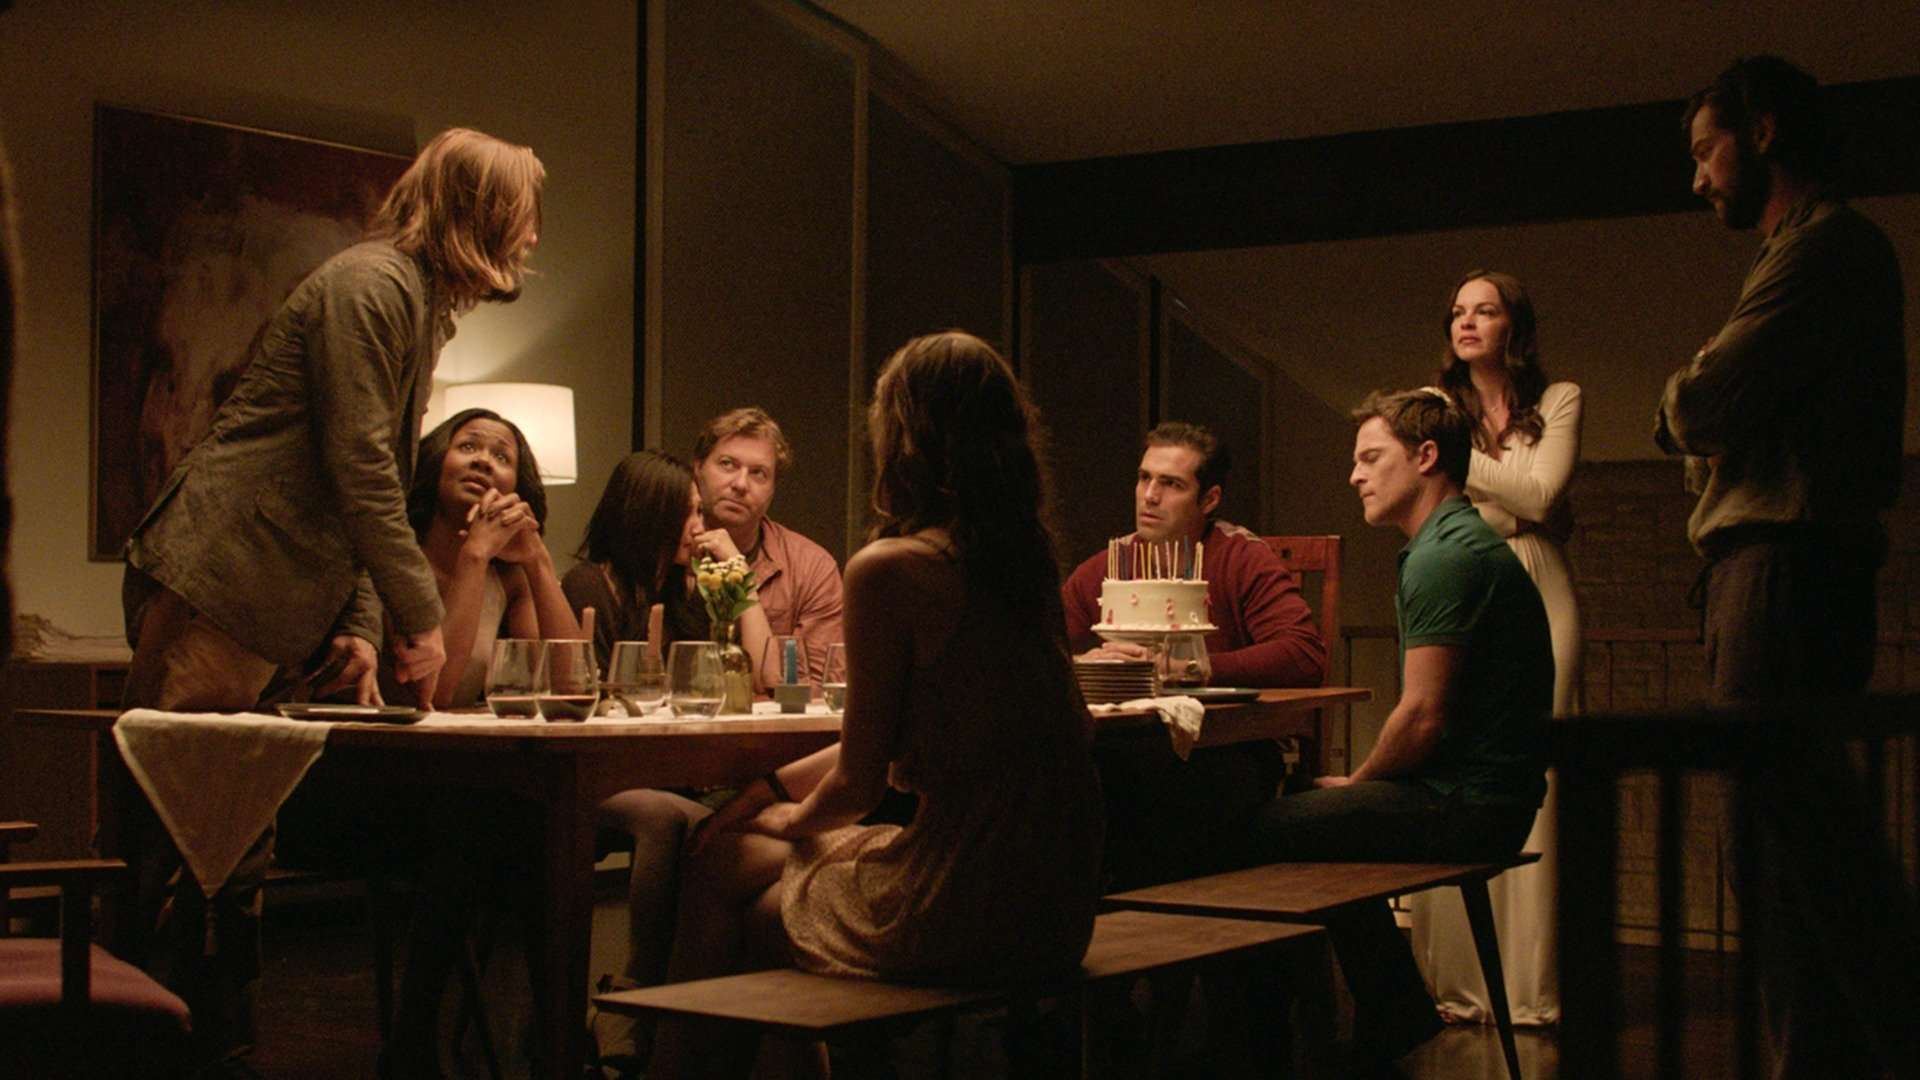 The Invitation scene